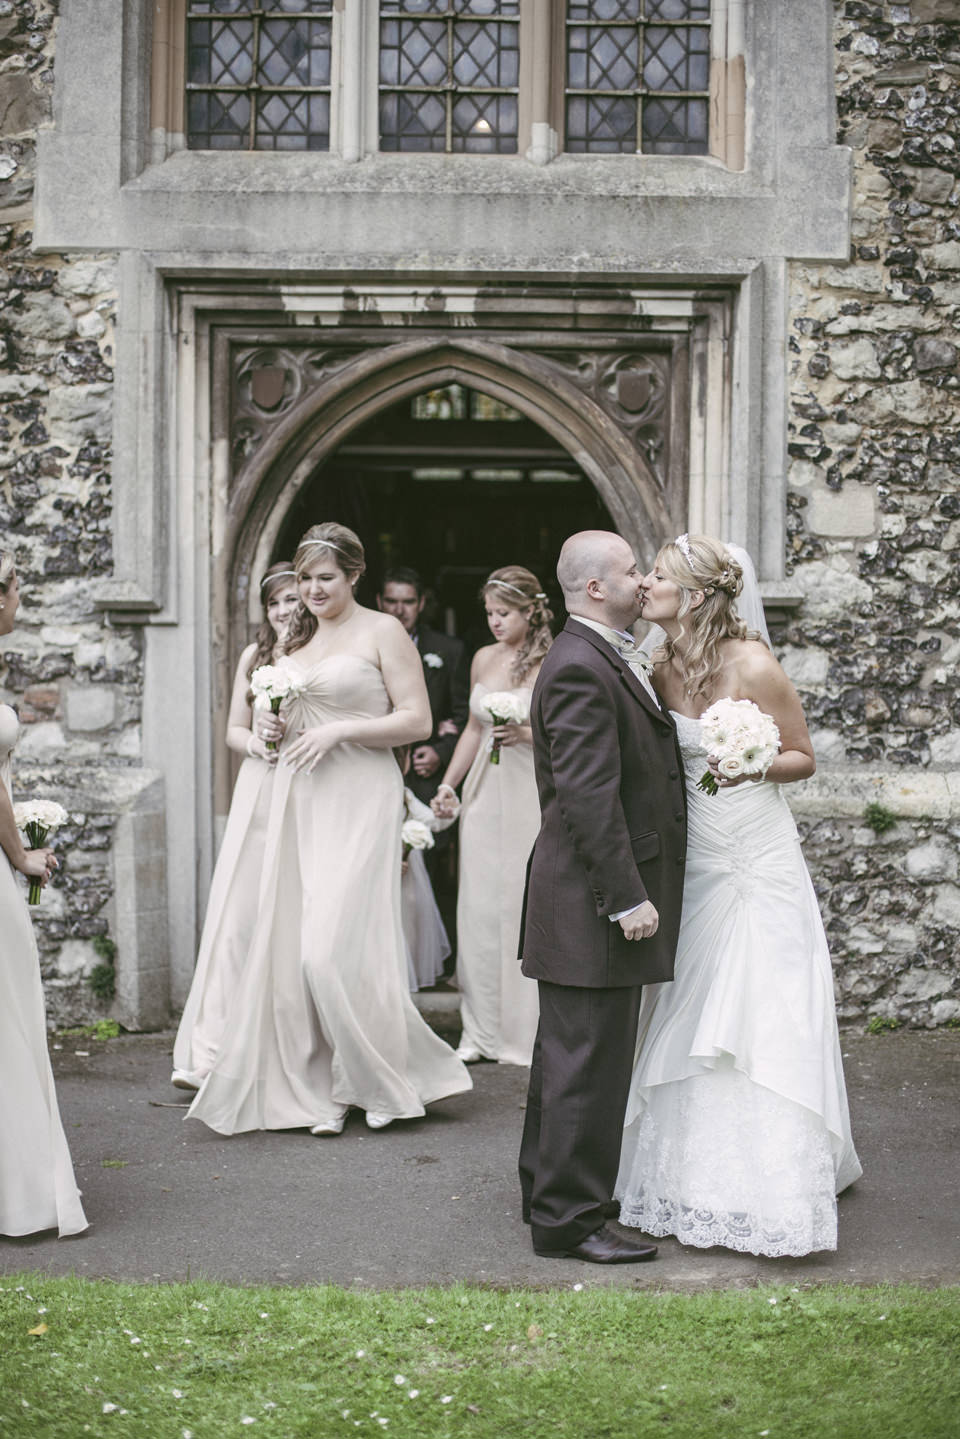 Nicola scott uk wedding photographs (51)